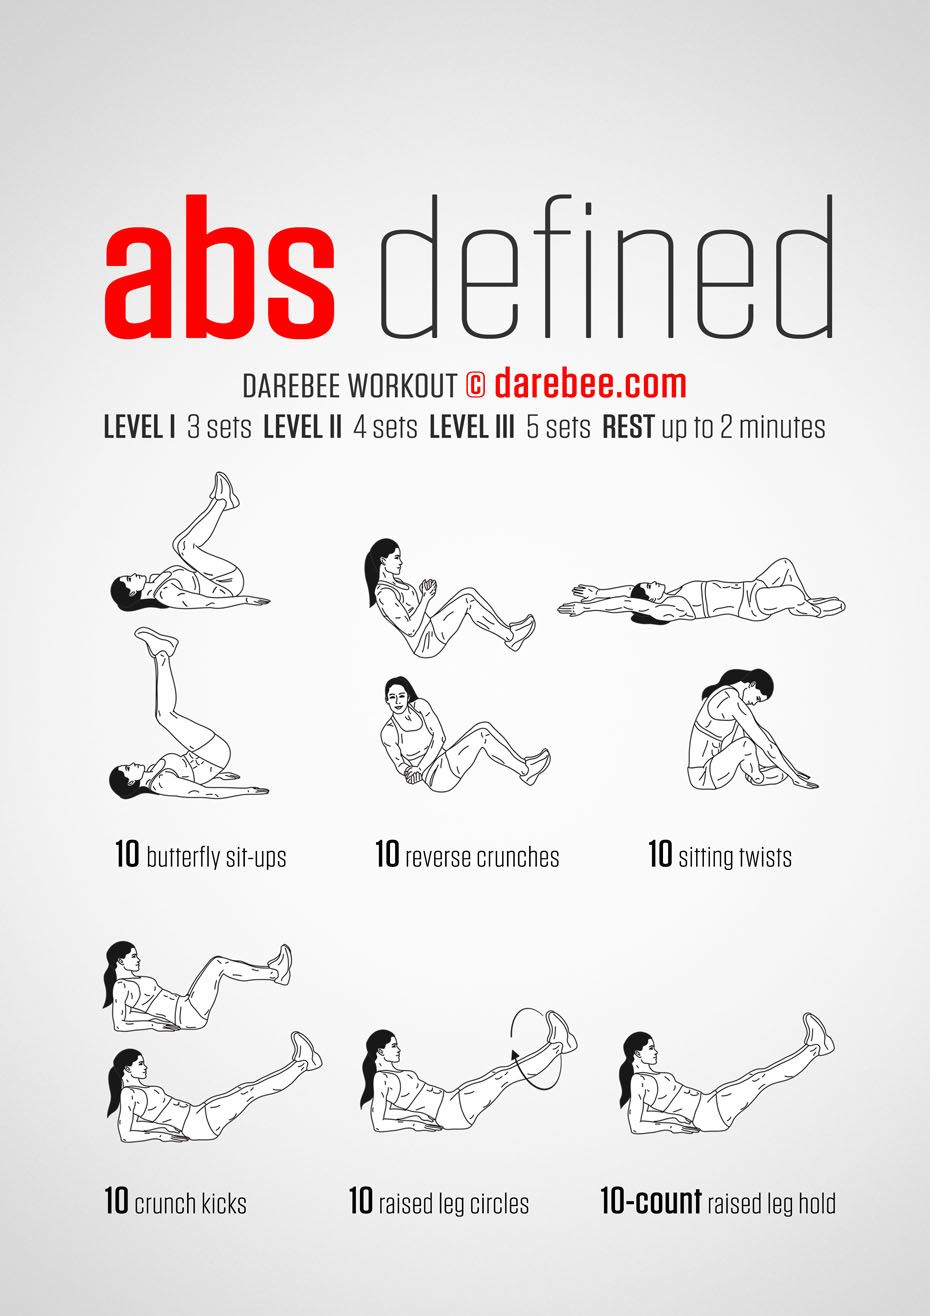 ab workout posted by ab workouts pinterest abdos exercice. Black Bedroom Furniture Sets. Home Design Ideas